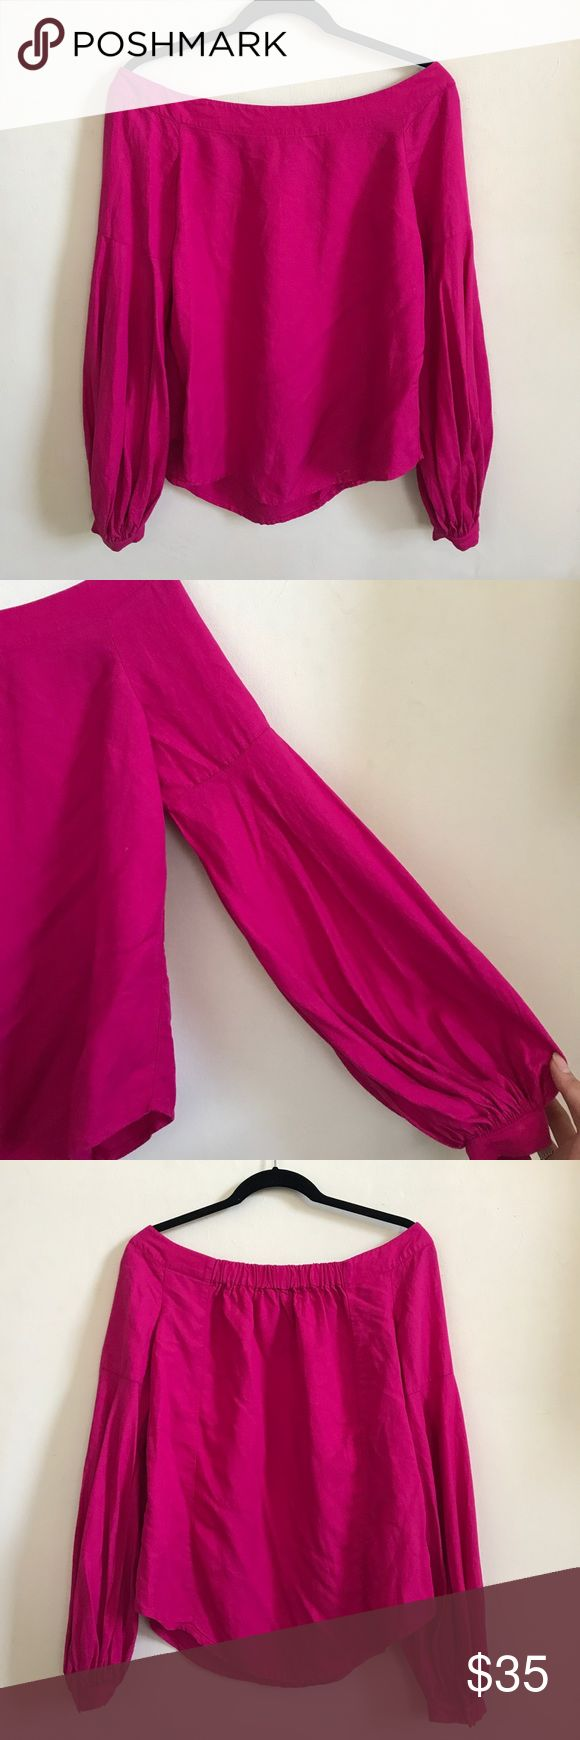 Anthropologie off the shoulder magenta blouse Off the shoulder blouse with slight balloon sleeve and back elastic for comfortable fit. Bright and vivid magenta color, striking with white jeans or tucked into a skirt. Worn lightly one time for an event. Anthropologie Tops Blouses